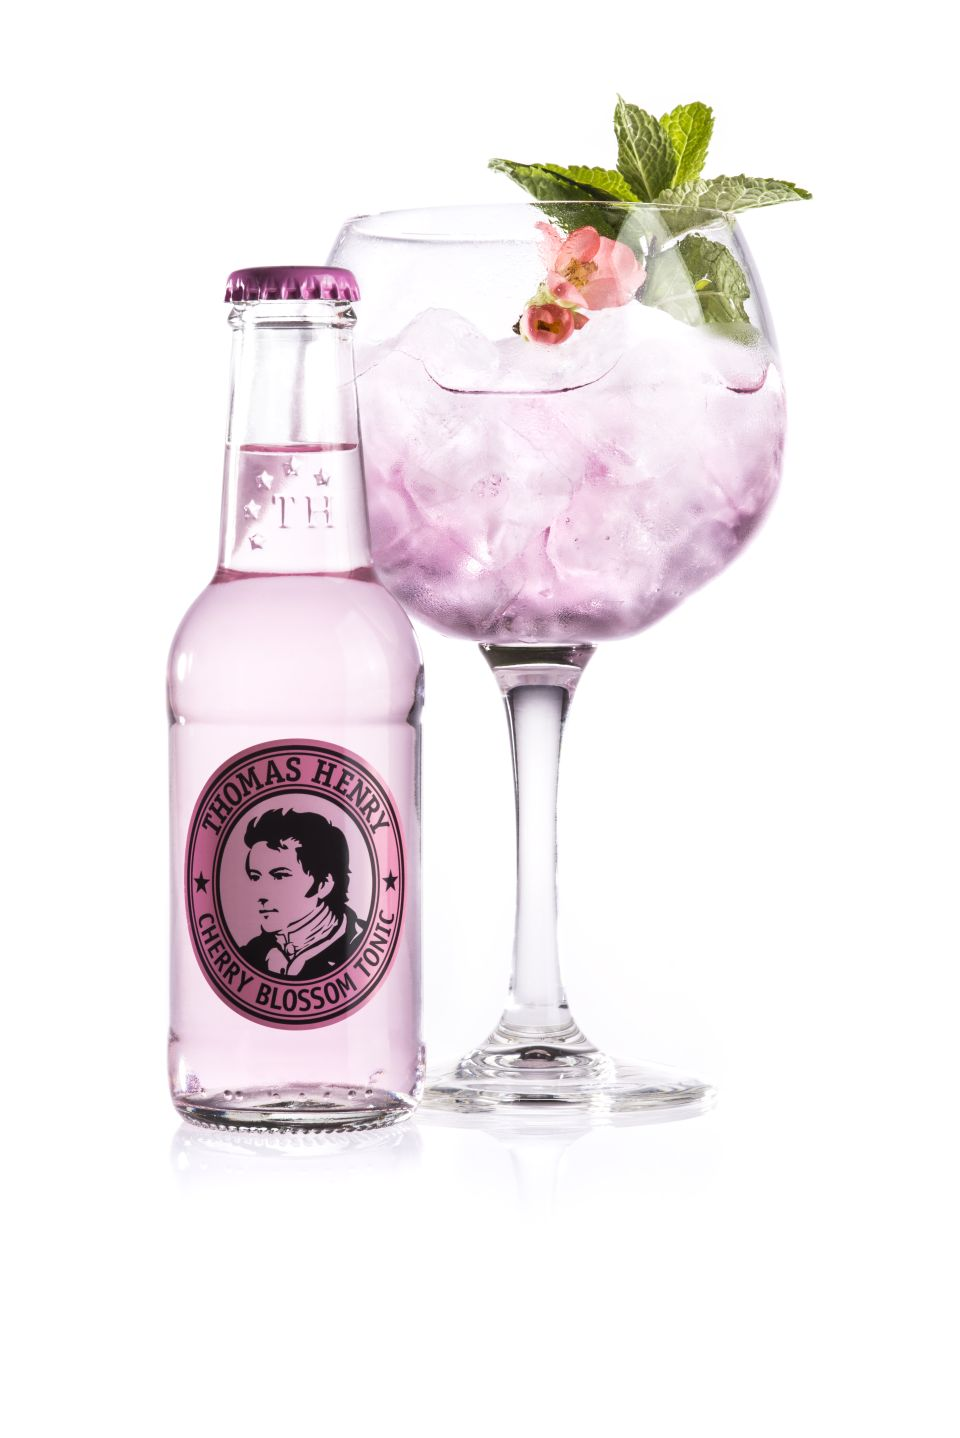 Thomas Henry_Pink Ink with bottle_with Thomas Henry Cherry Blossom Tonic